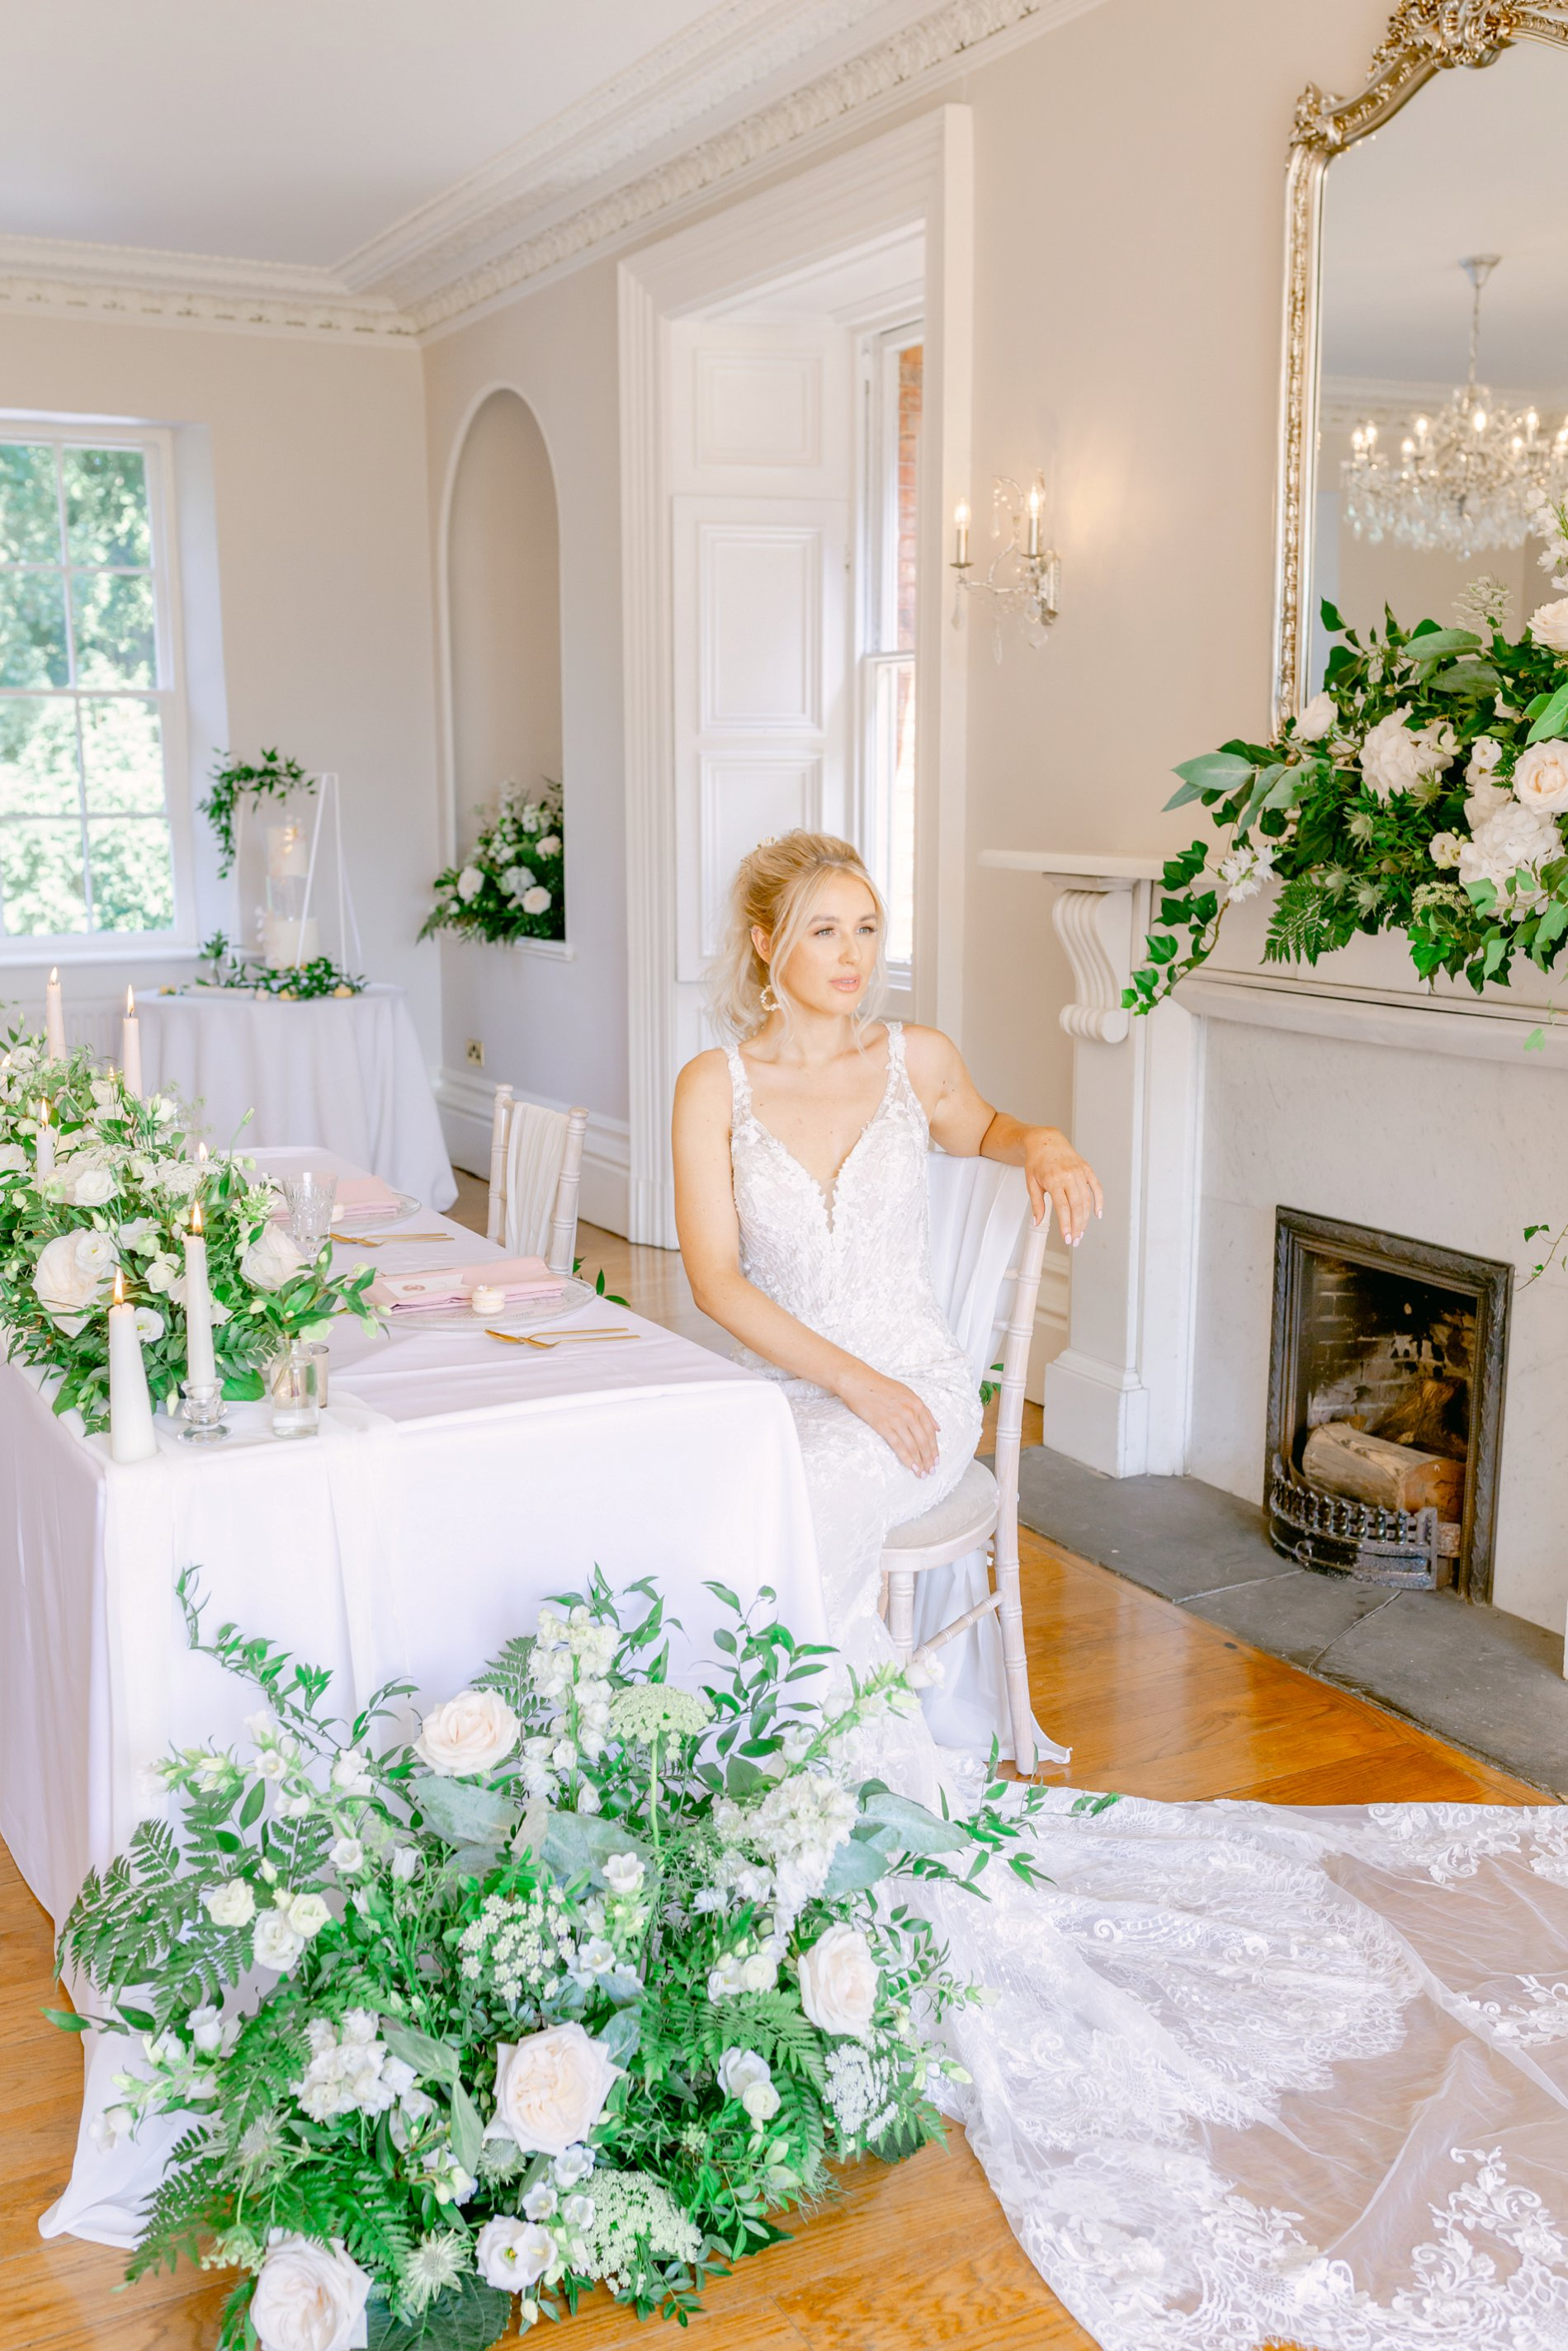 An Elegant UNVEILED Network wedding shoot at Hirst Priory (c) Ailsa Reeve Photography (27)